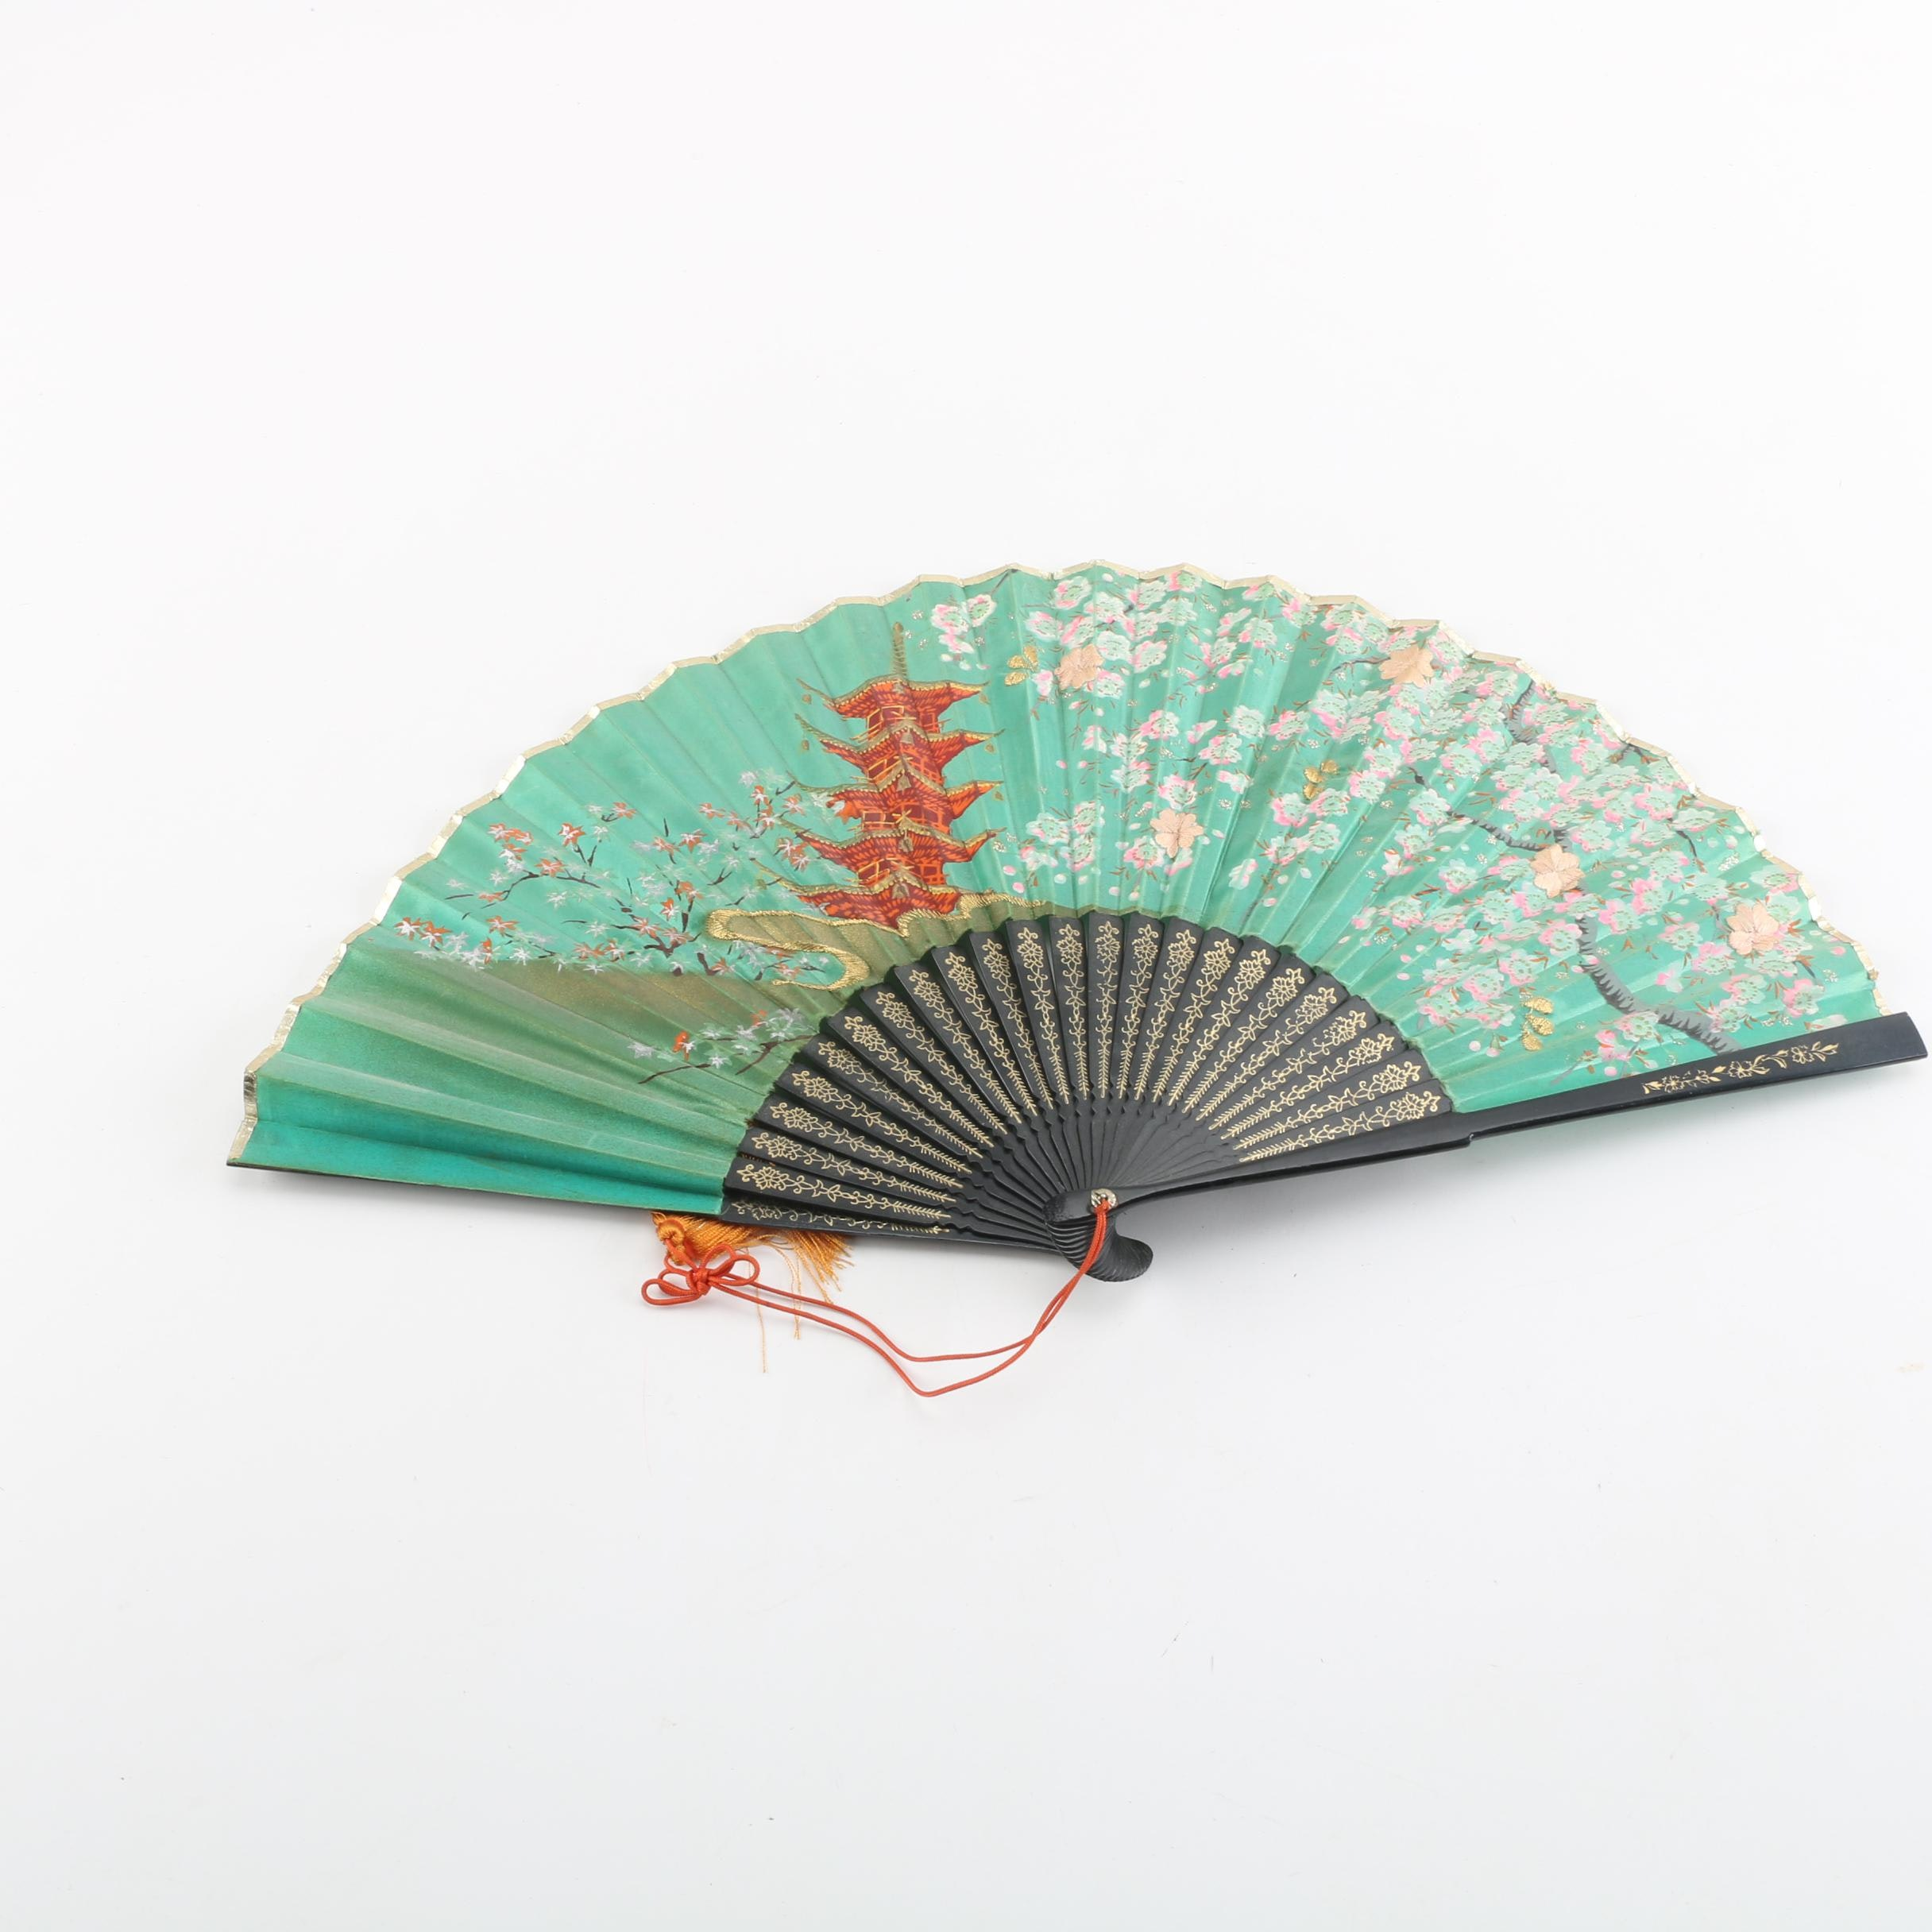 Vintage Chinese Hand-Painted and Embroidered Fabric Folding Fan